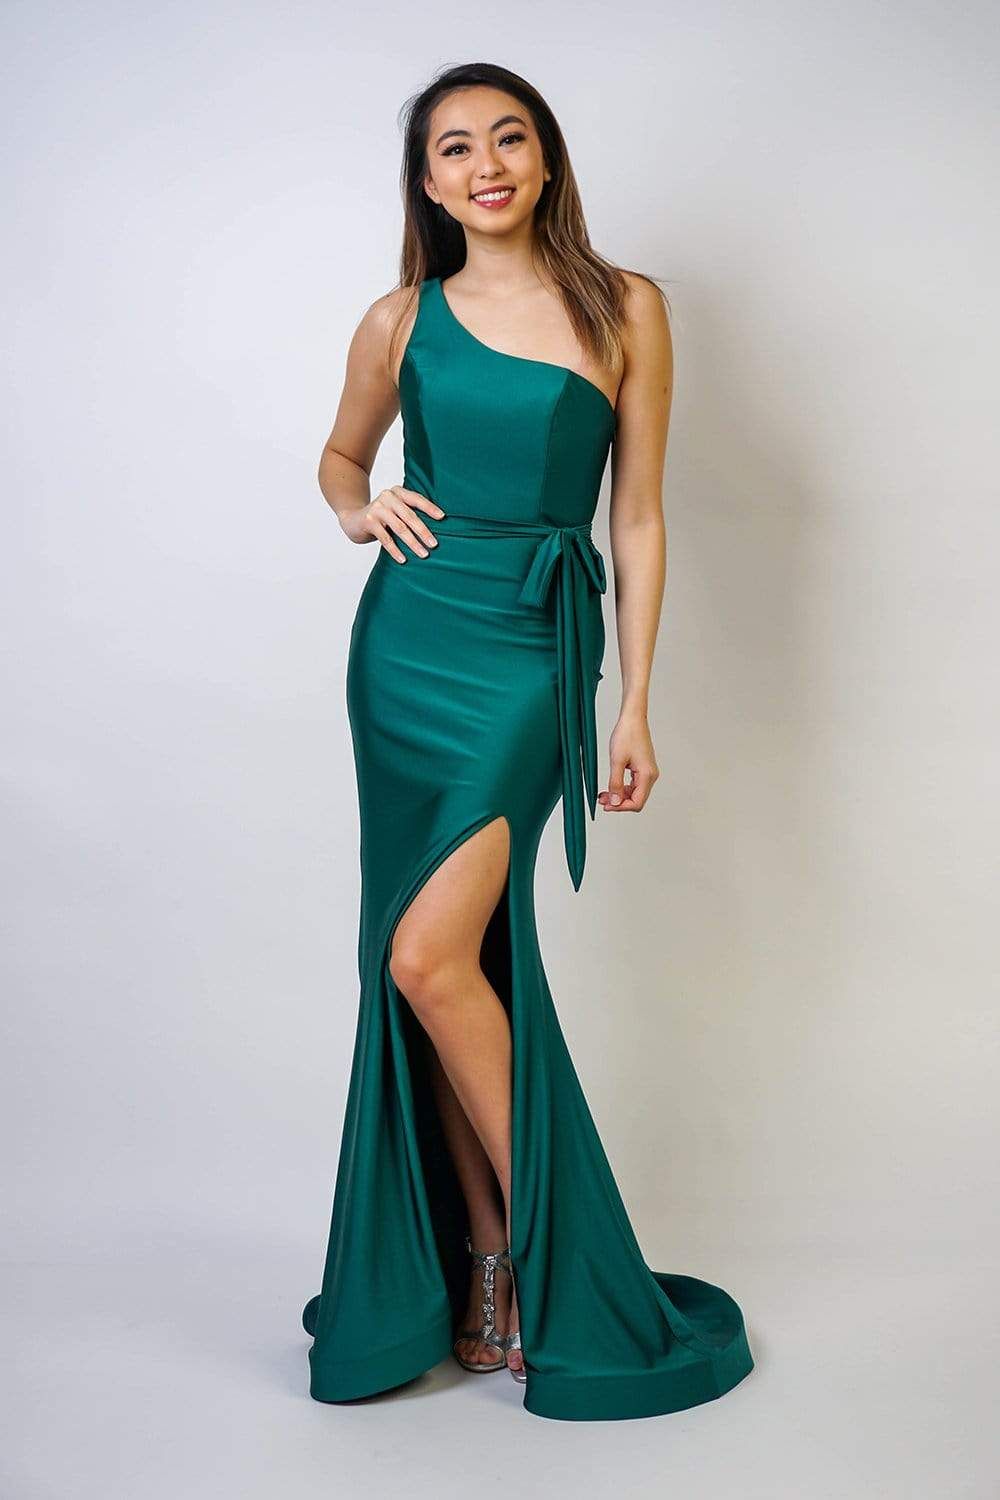 GOWN Sleek One Shoulder Green Gown - Chloe Dao